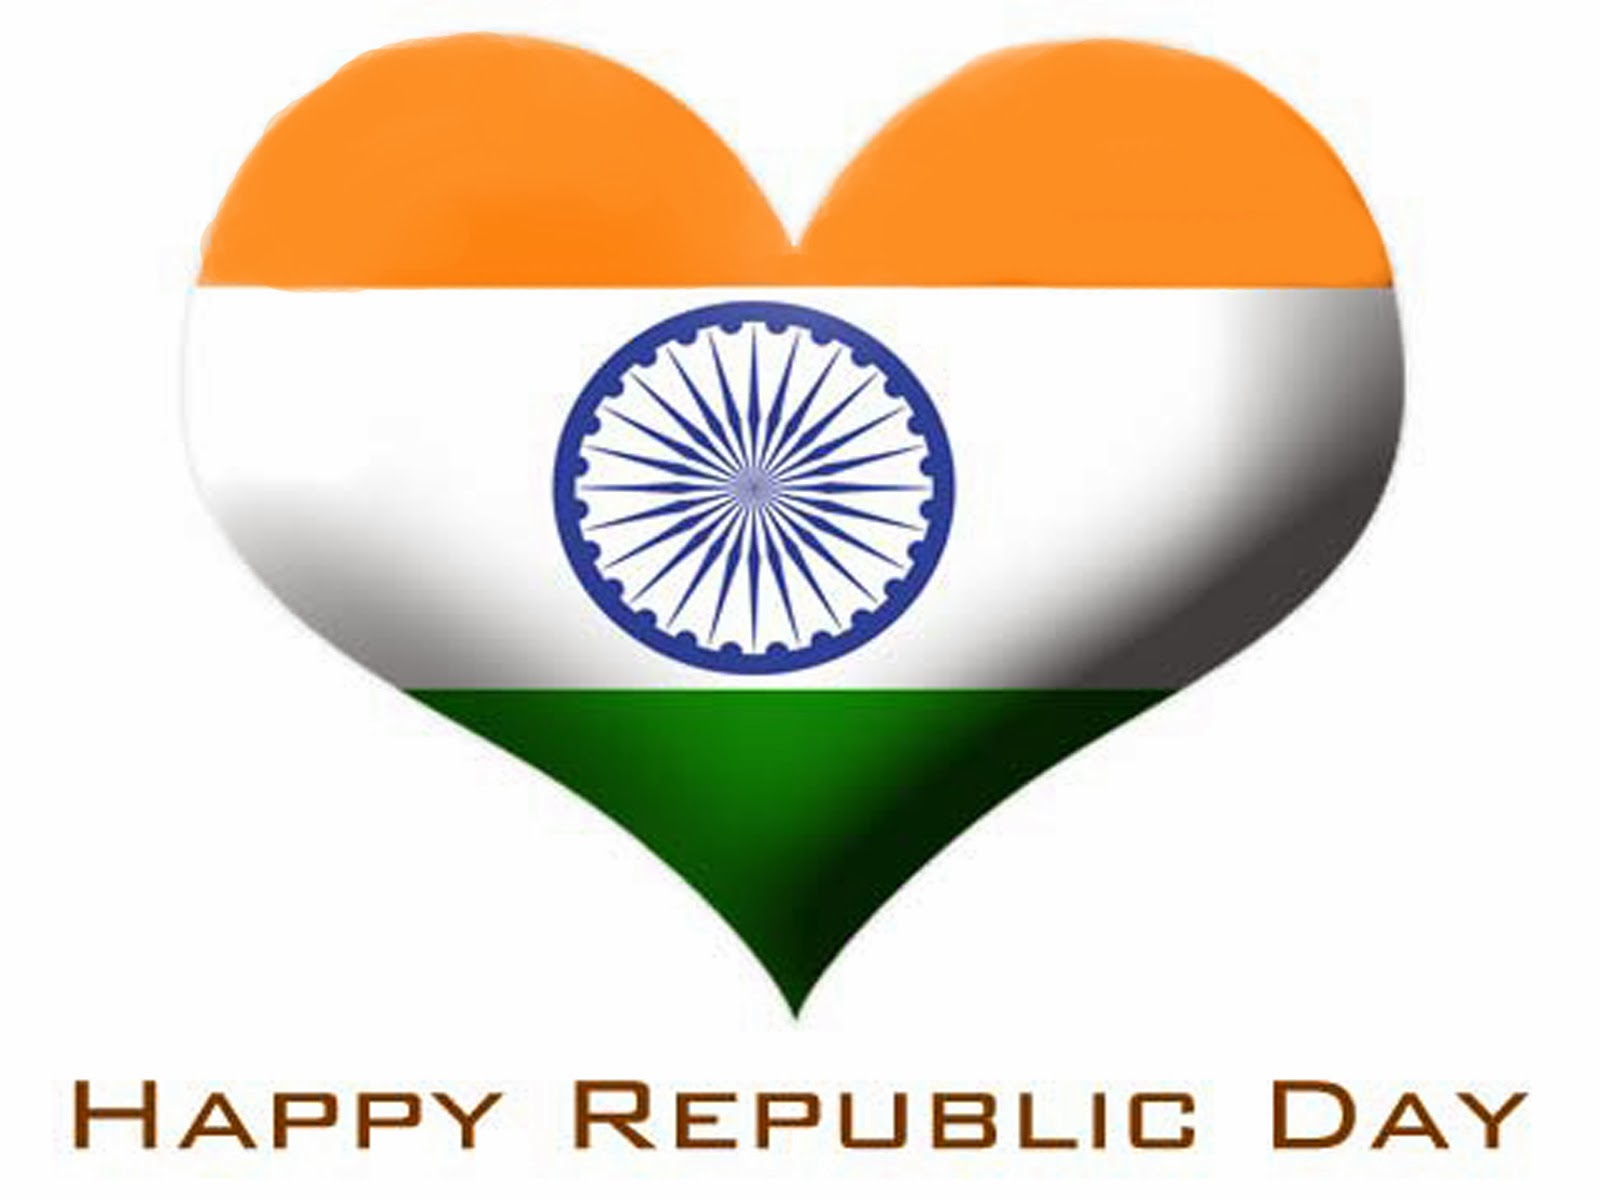 Republic Day Images With Quotes: Lovable Images: Happy Republic Day Images With Quotes Free